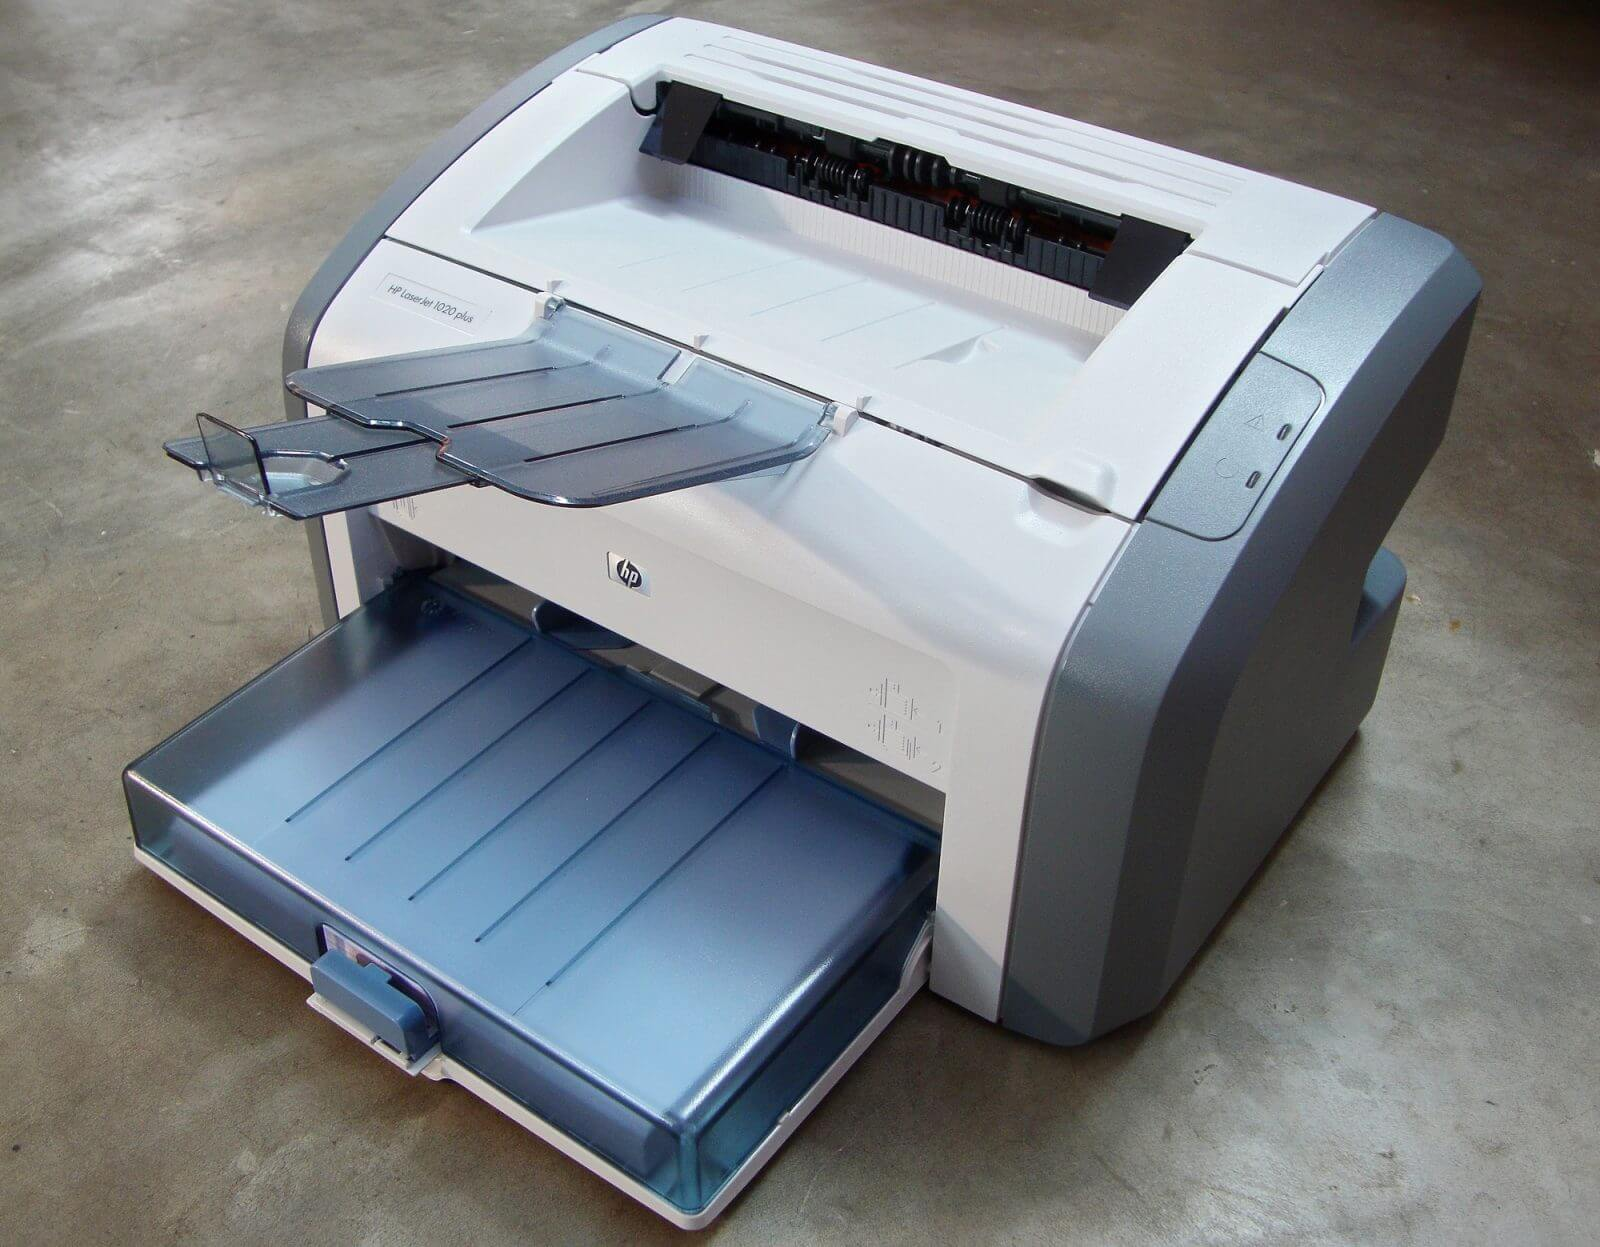 Sublimation Printing Technology - Discover Business Opportunities